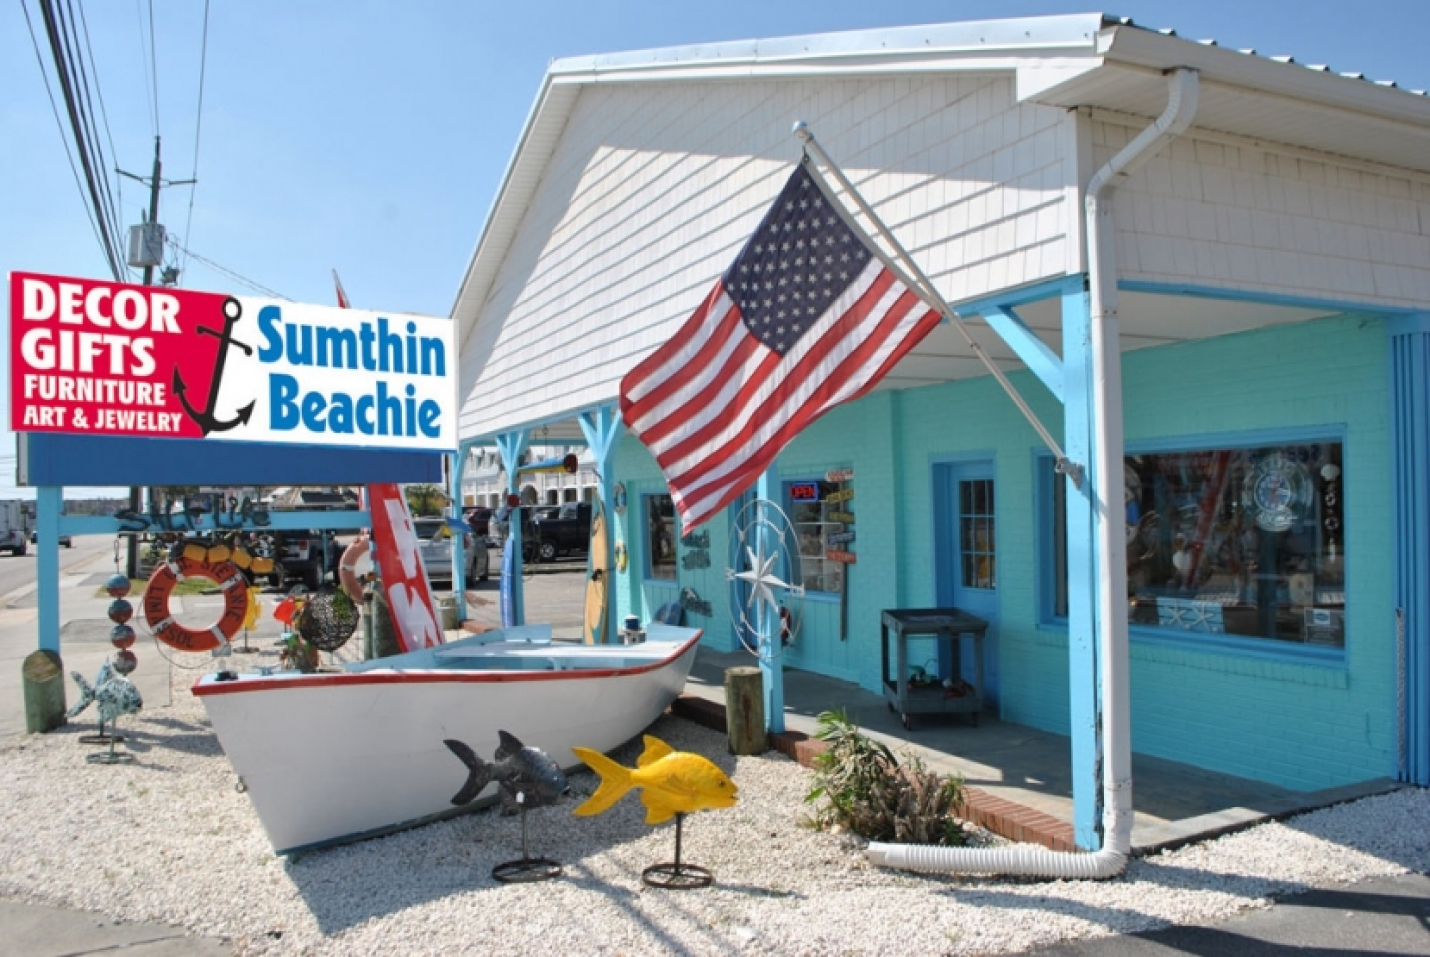 Come See What's New at Sumthin Beachie